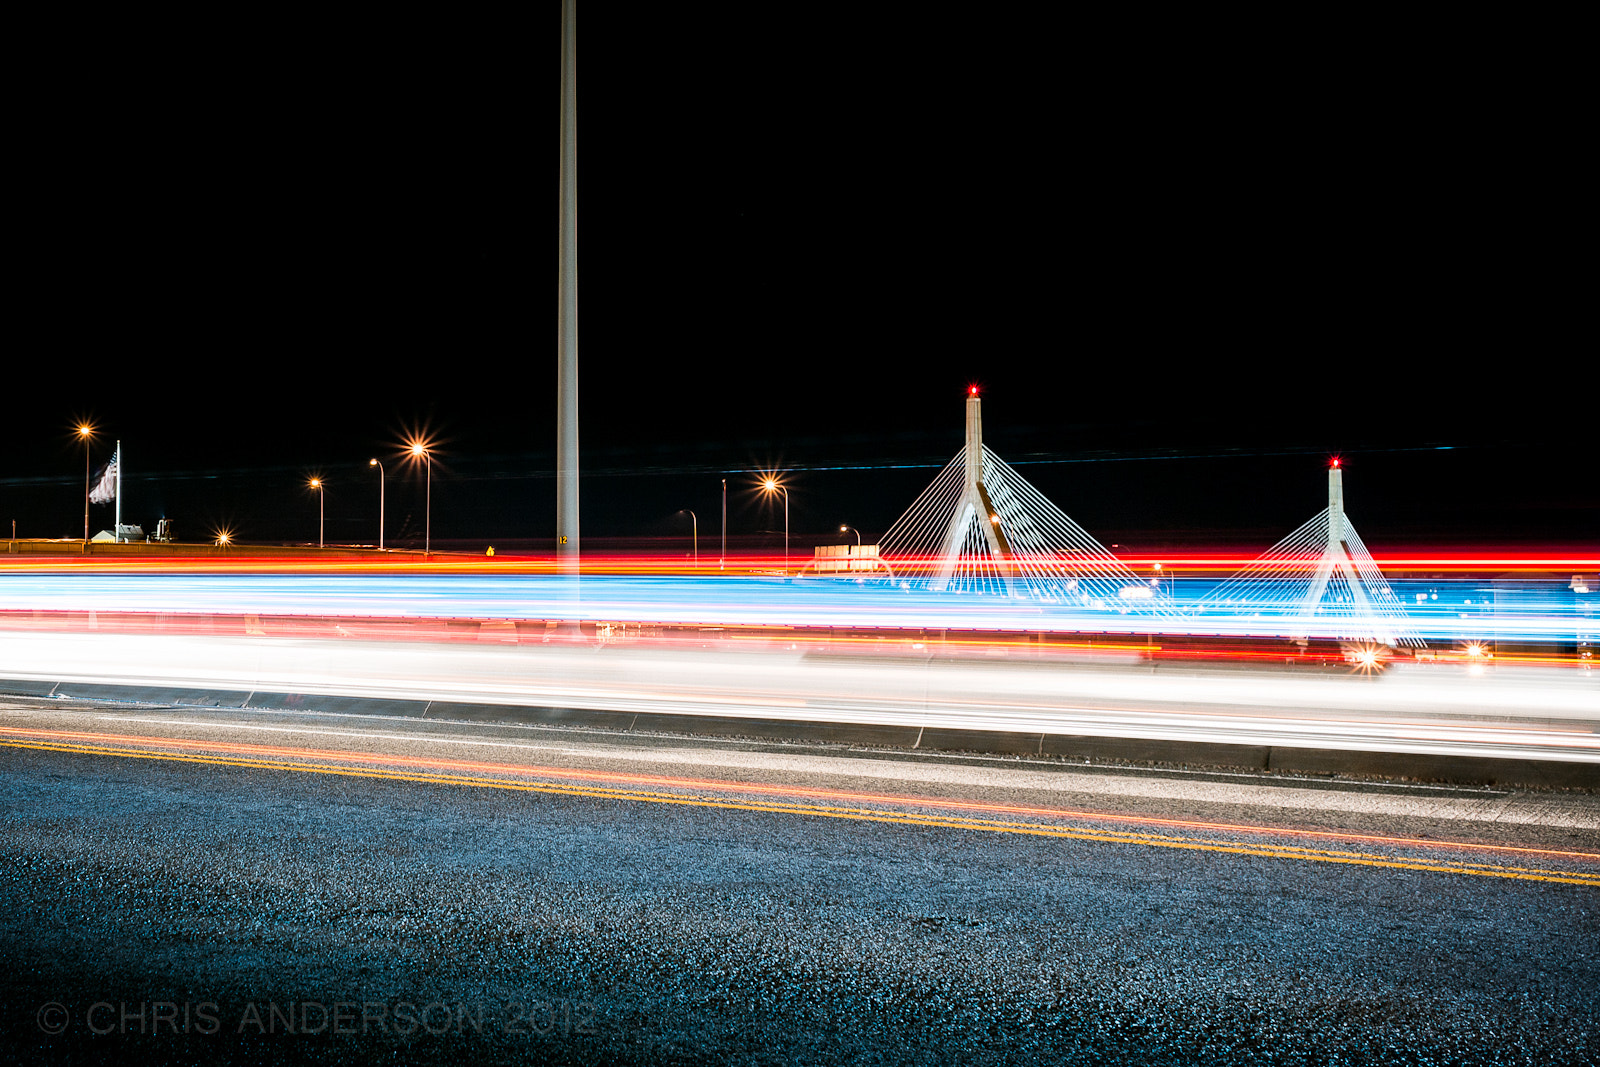 Photograph LaserSpeed by Chris Anderson on 500px